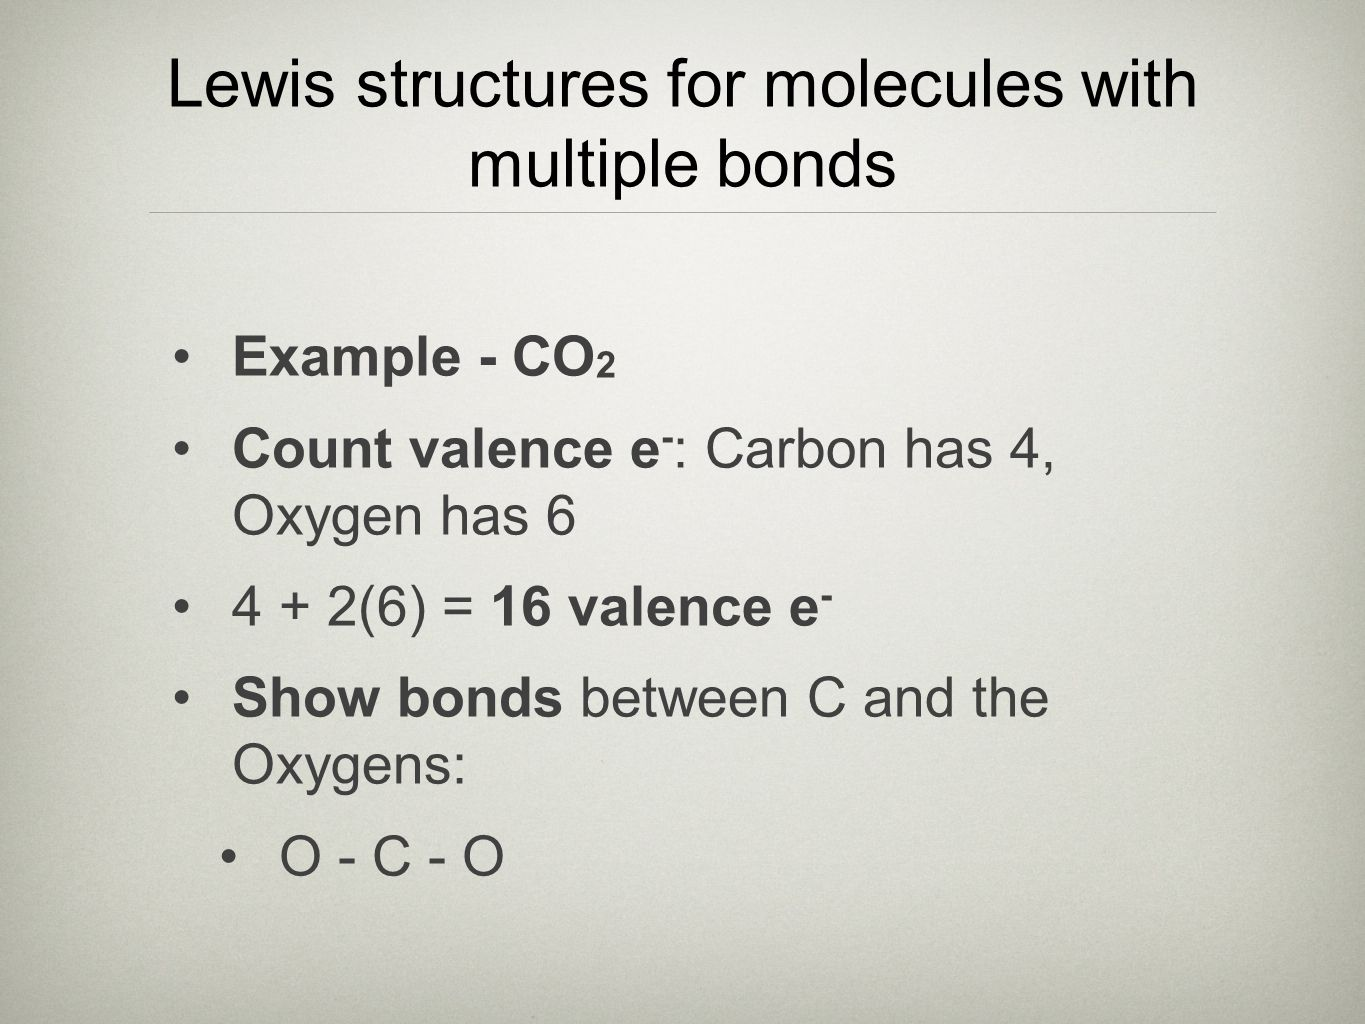 Lewis structures for molecules with multiple bonds Example - CO 2 Count valence e - : Carbon has 4, Oxygen has 6 4 + 2(6) = 16 valence e - Show bonds between C and the Oxygens: O - C - O